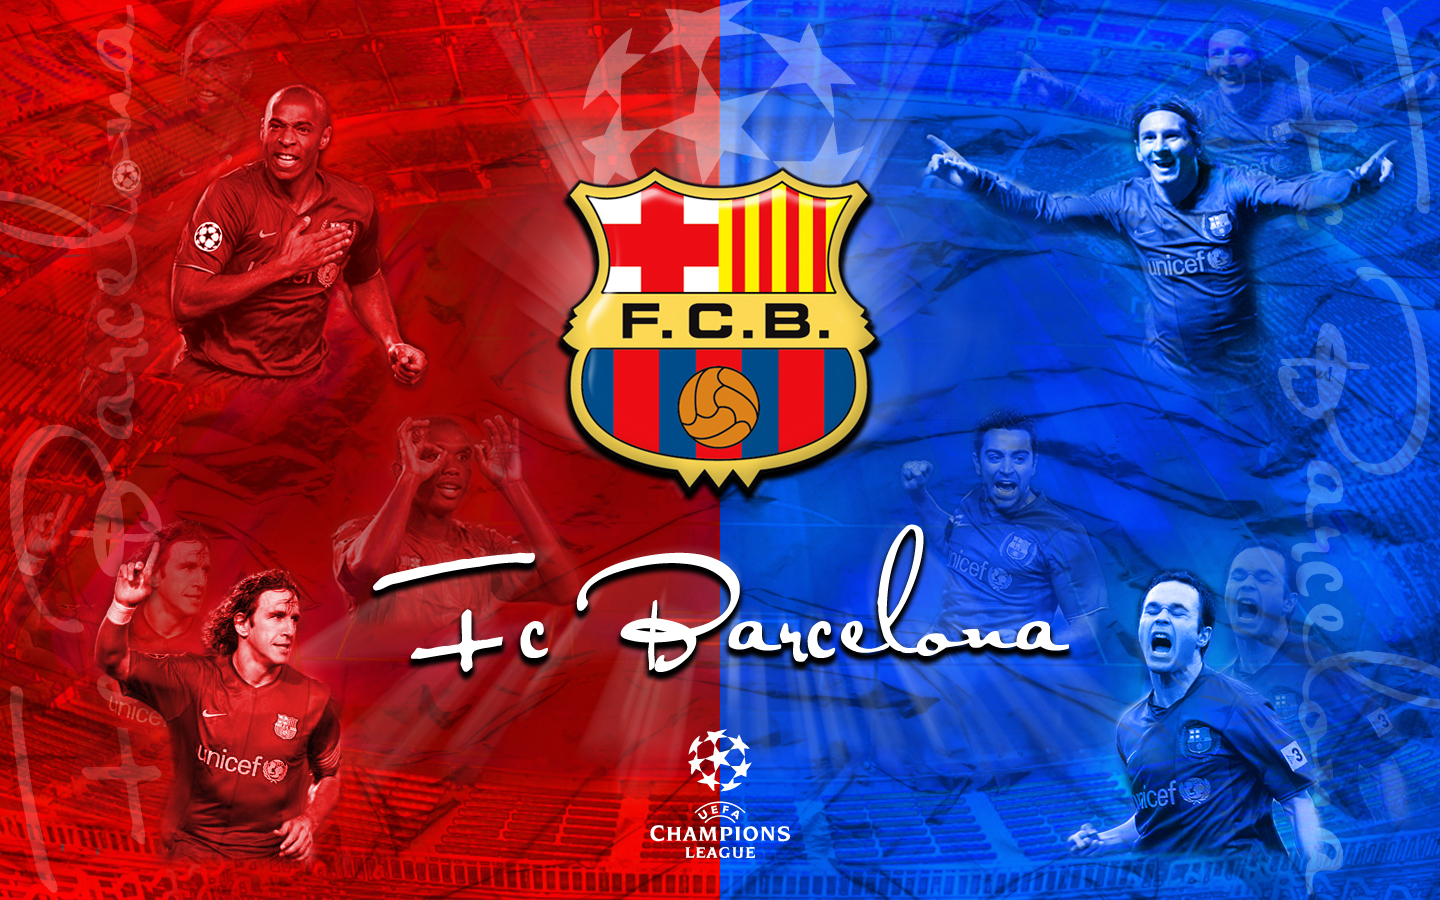 Real Madrid: ALL SPORTS CELEBRITIES: FC Barcelona Logos New HD